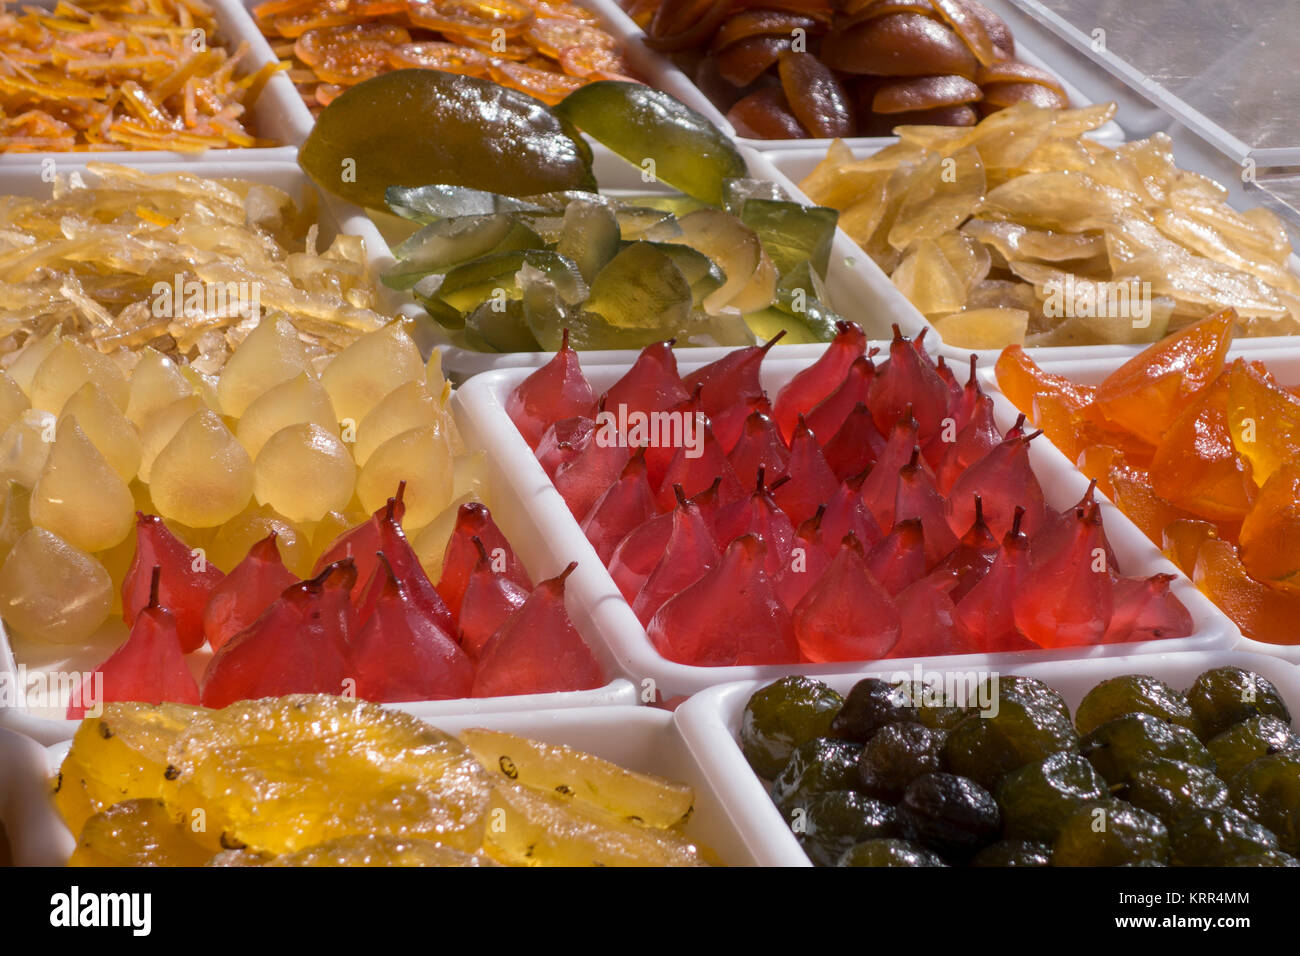 Mustard Fruits, Cours Saleya, Nice, Alpes Maritimes, Provence, French Riviera, Mediterranean, France, Europe, - Stock Image